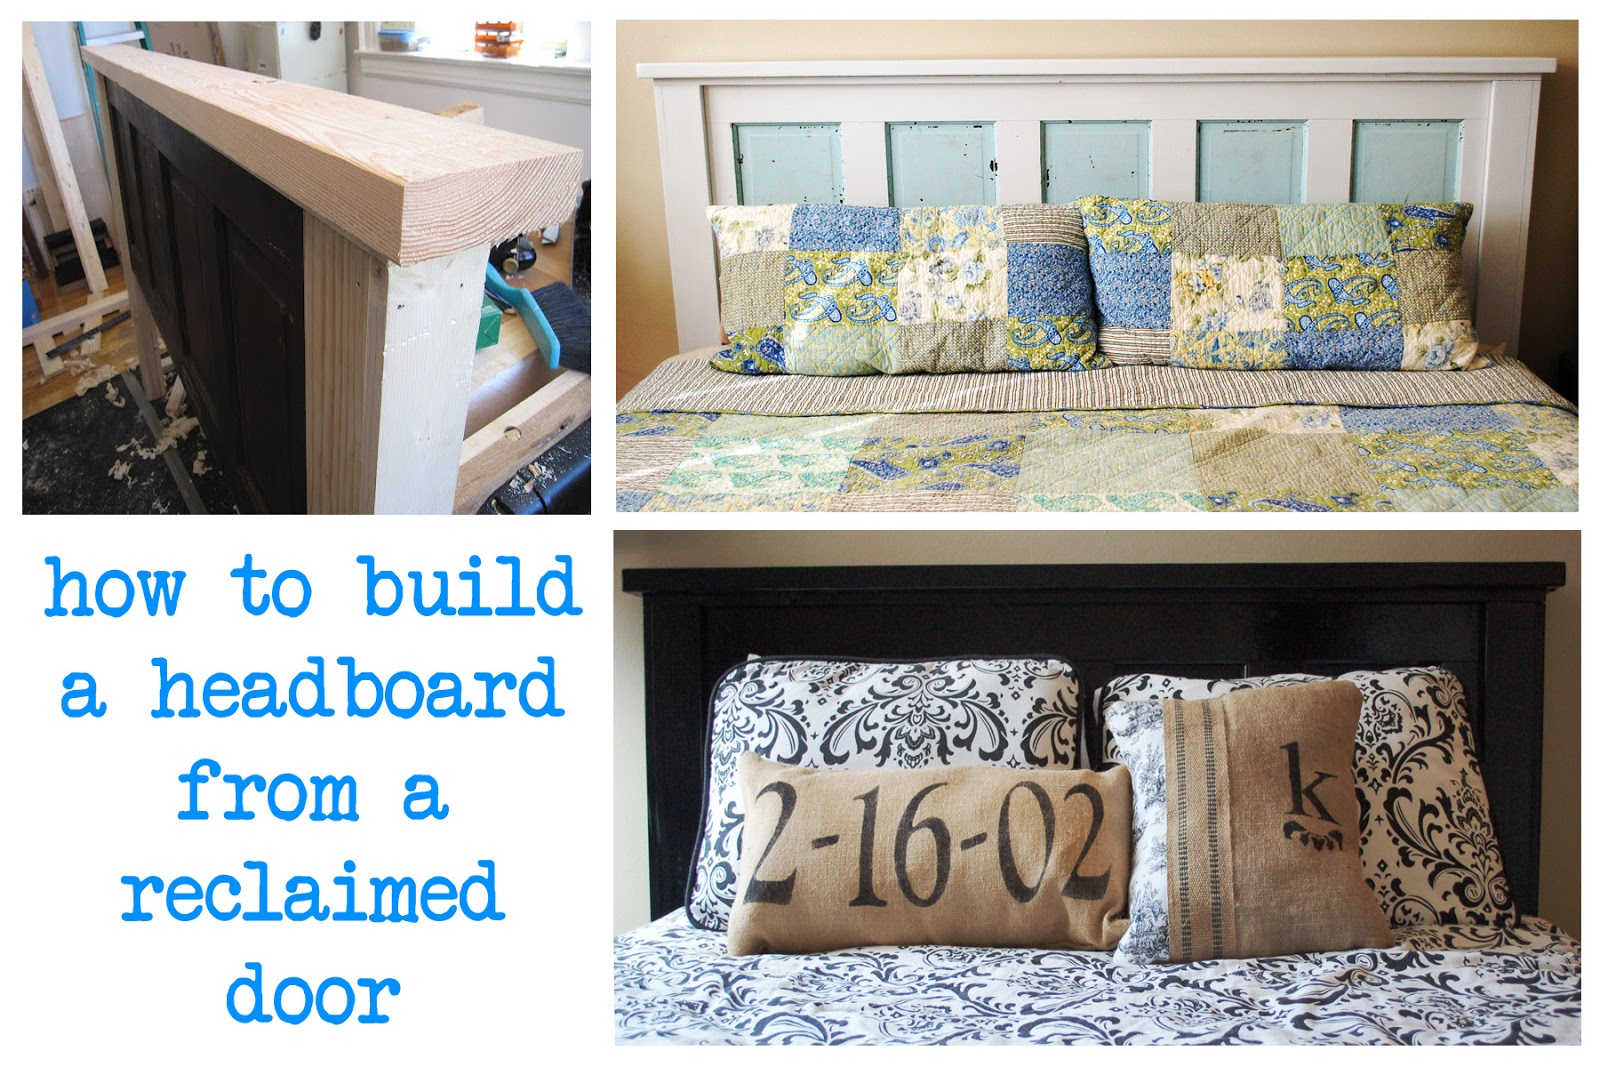 Ain\'t She Crafty: How To Build A Headboard From An Old Door